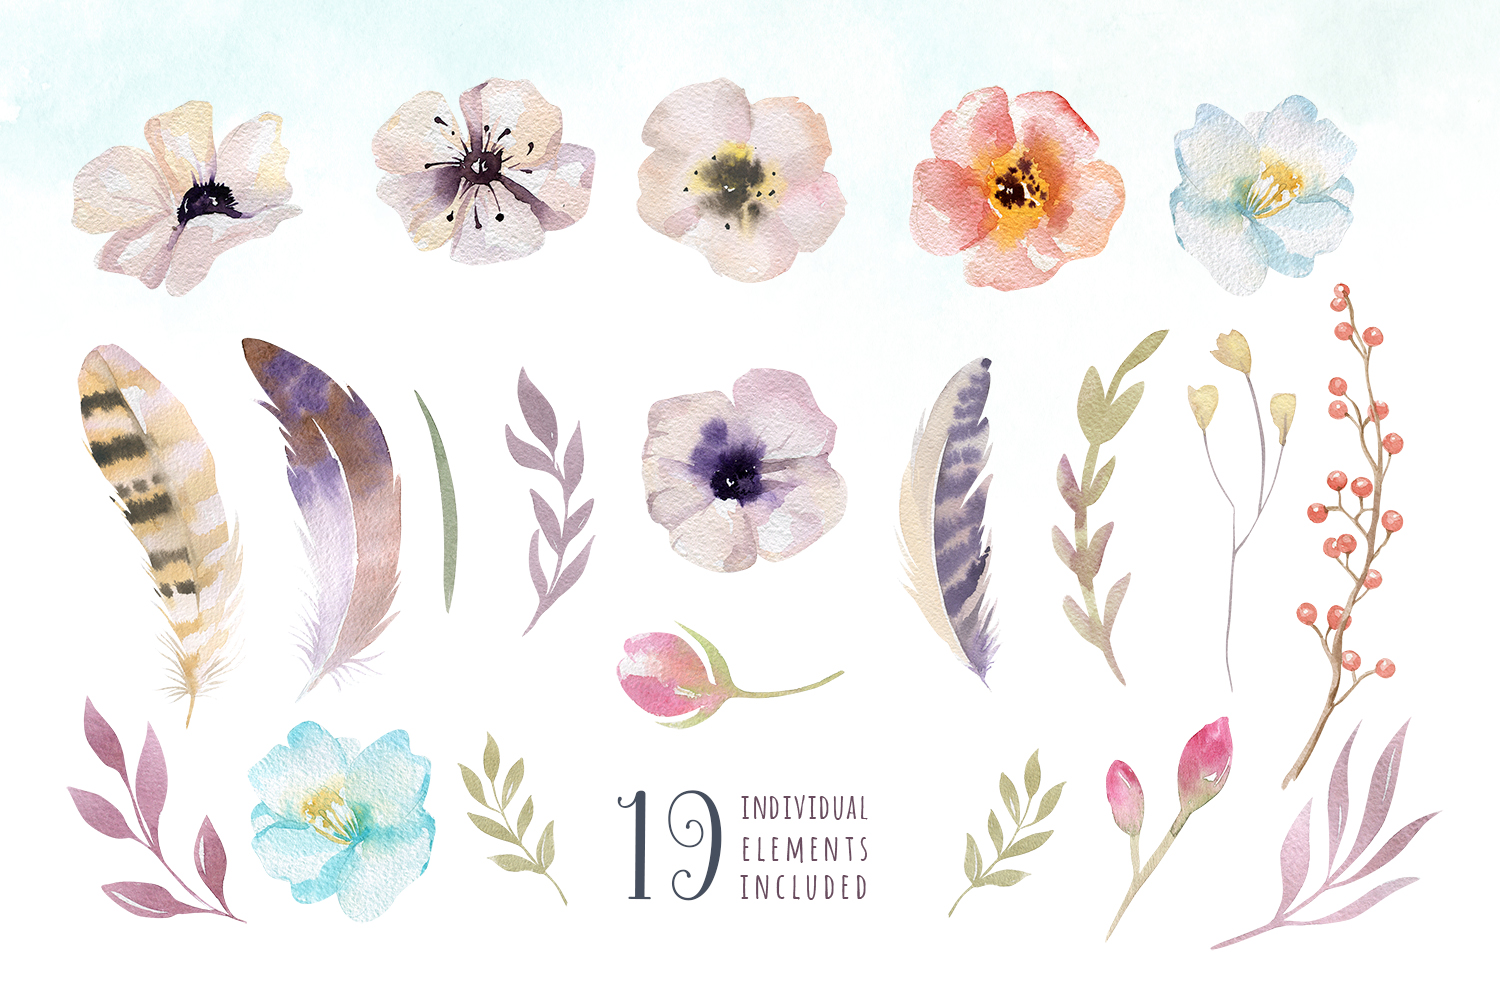 Watercolor dreamcatcher clipart banner free library Dreamcatcher clipart watercolor - 15 transparent clip arts ... banner free library